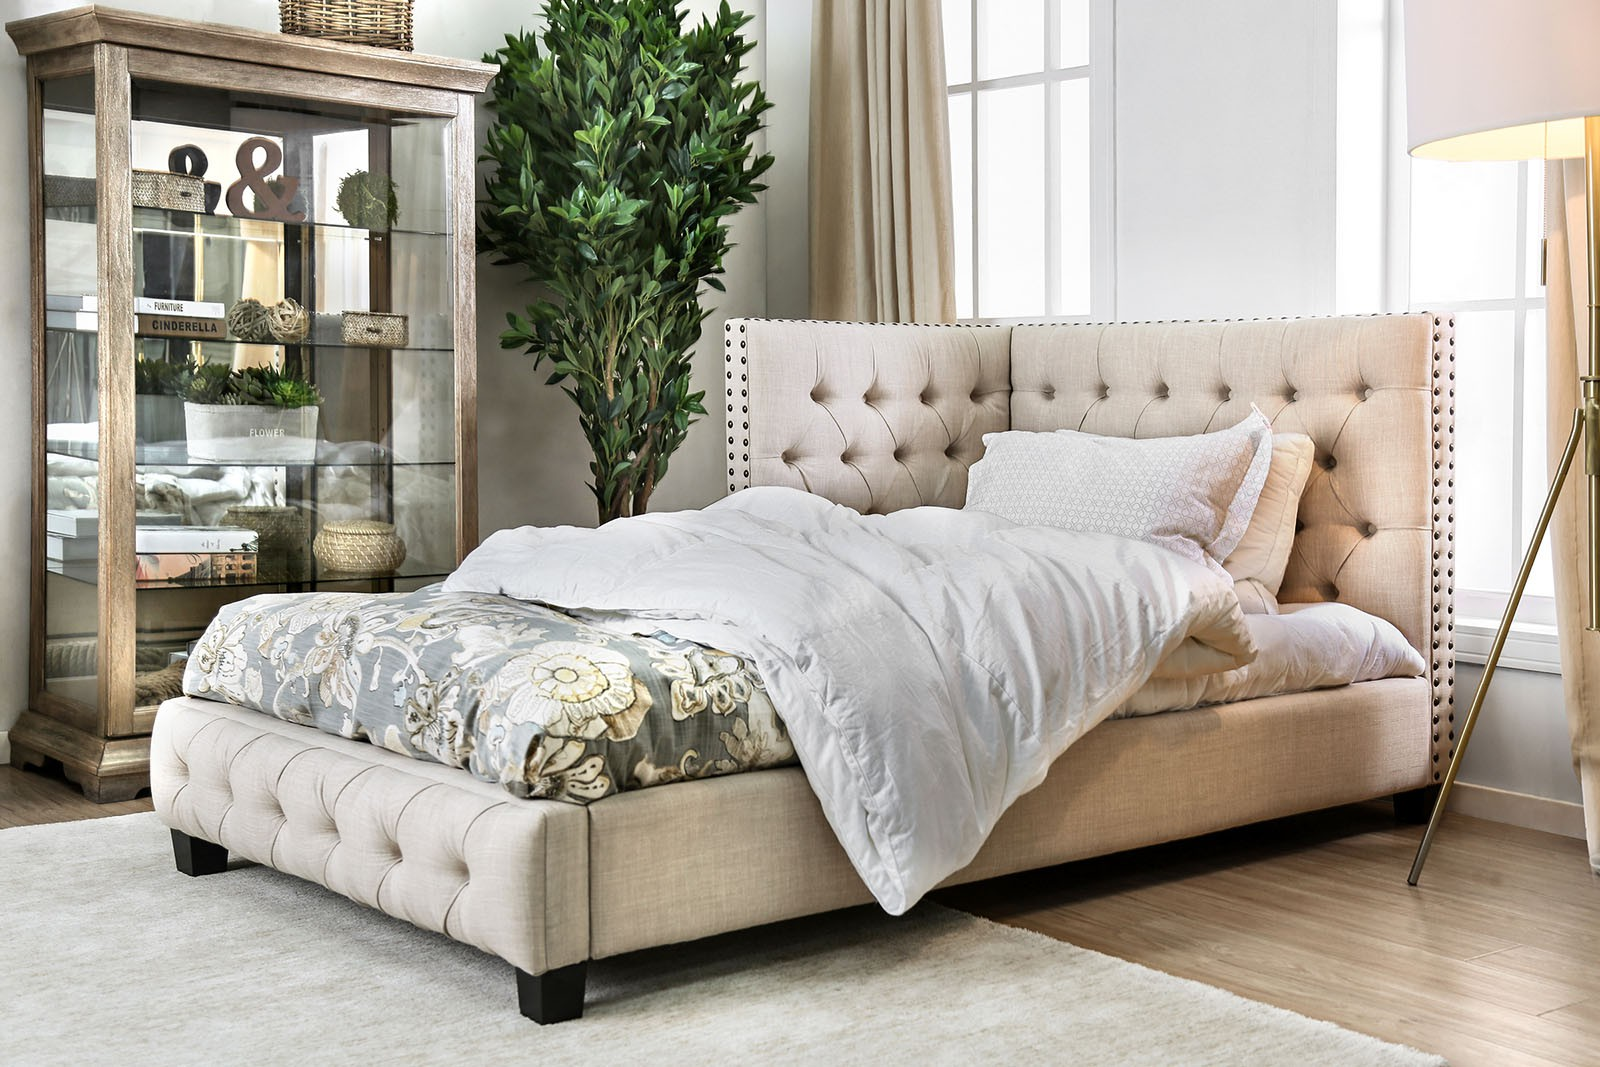 17-CM7197-1 Carina Twin Tuffted Corner Bed $598